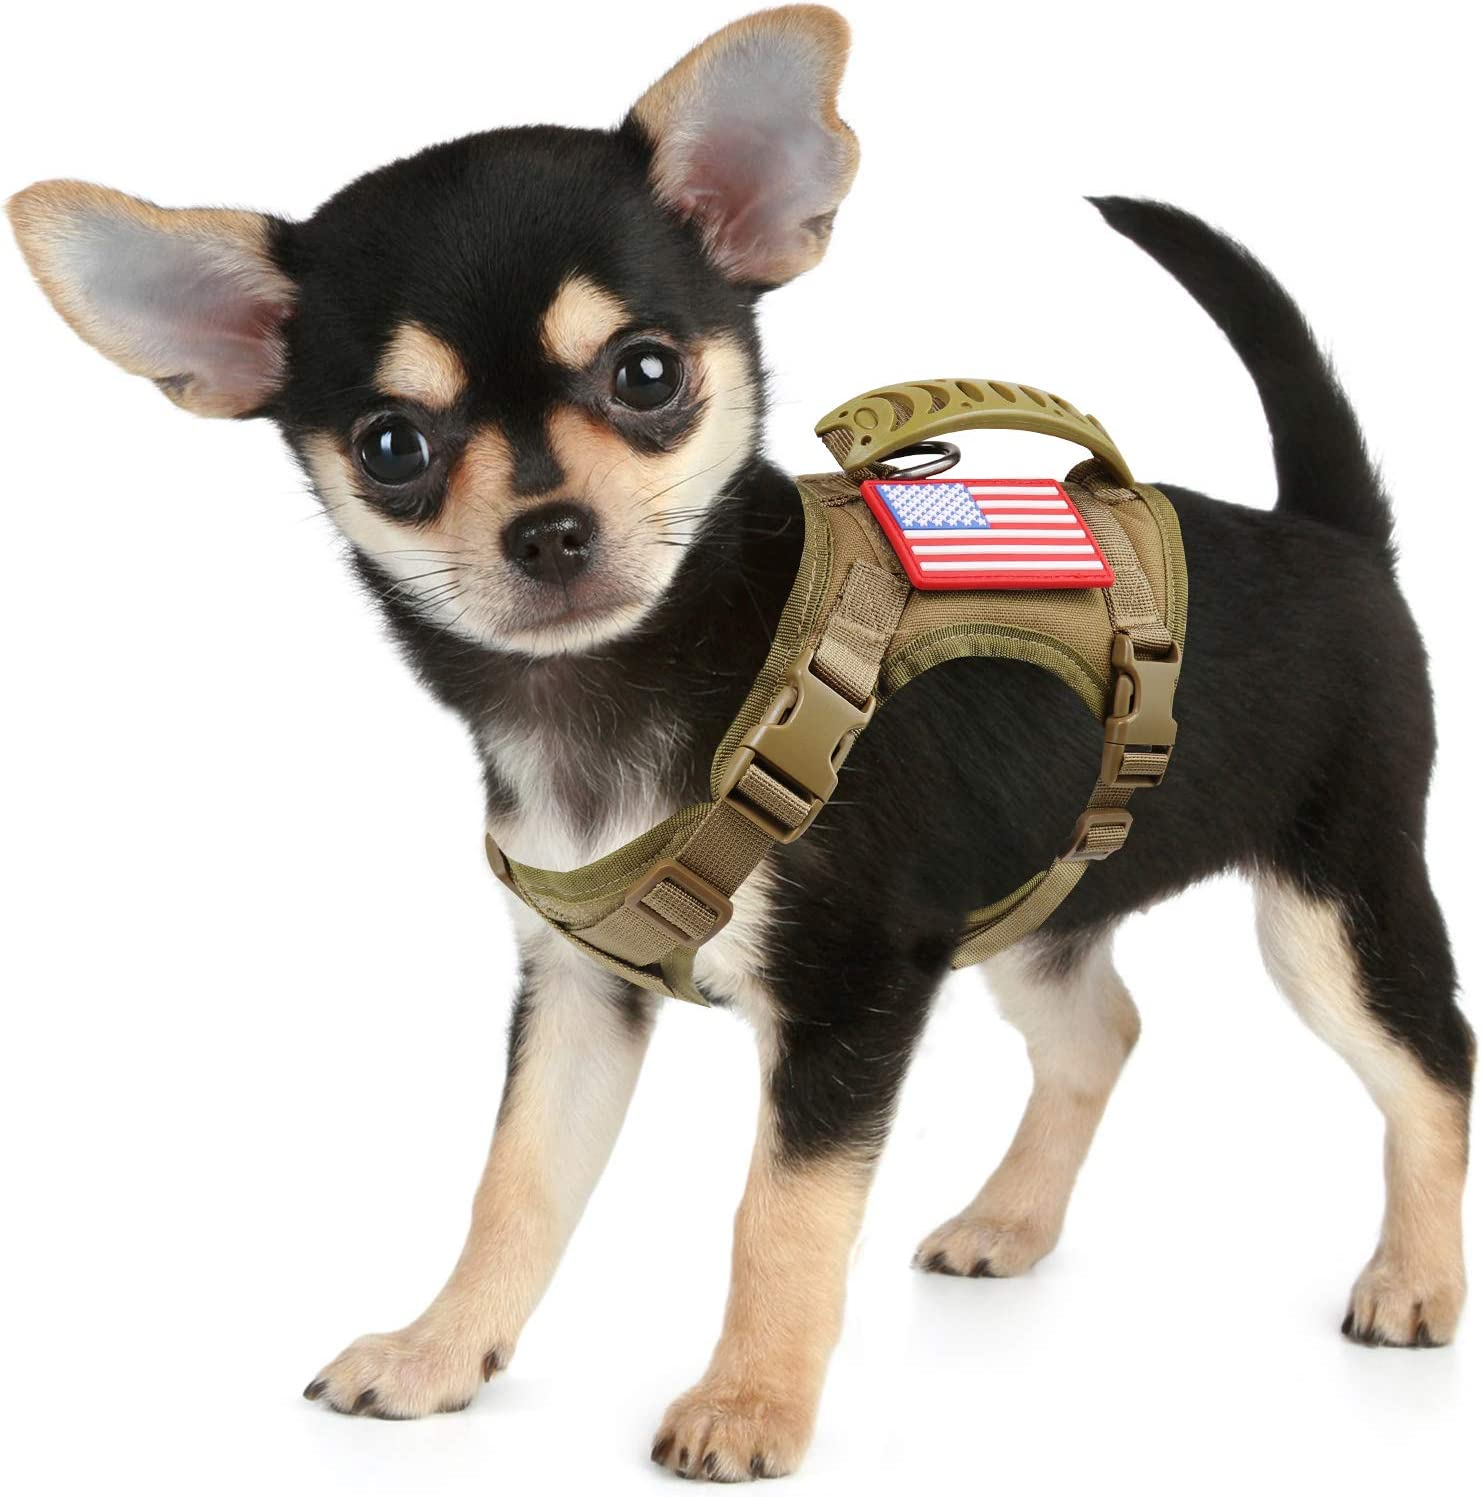 Image of a cute little dog wearing a harness in tan color, with buckles and an American flag tag.